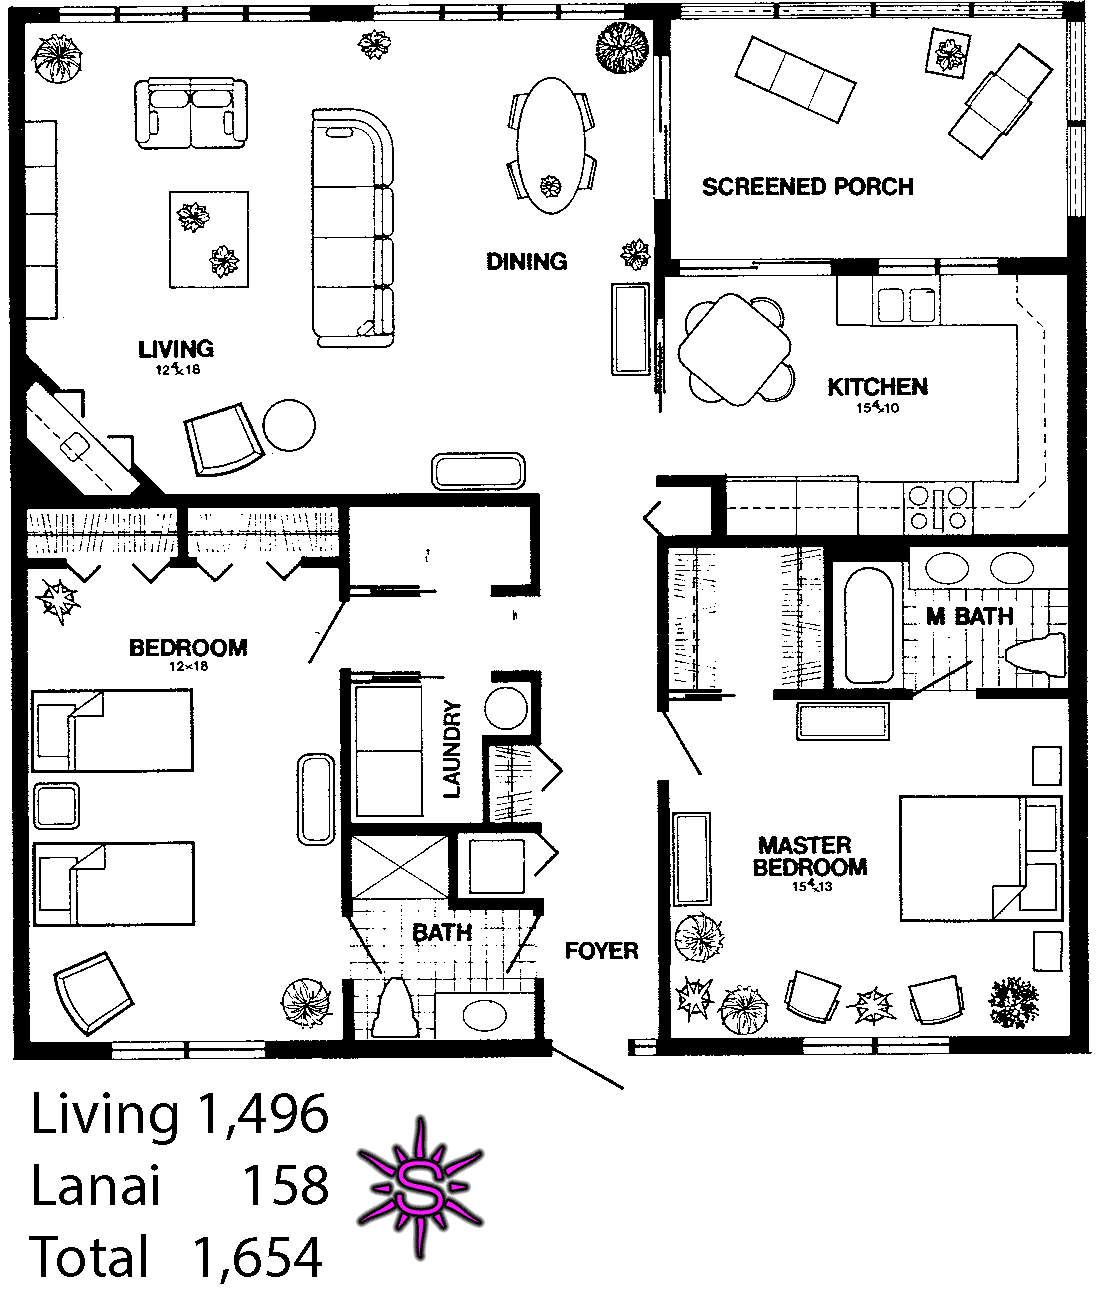 Interlachen Villas Floor Plans